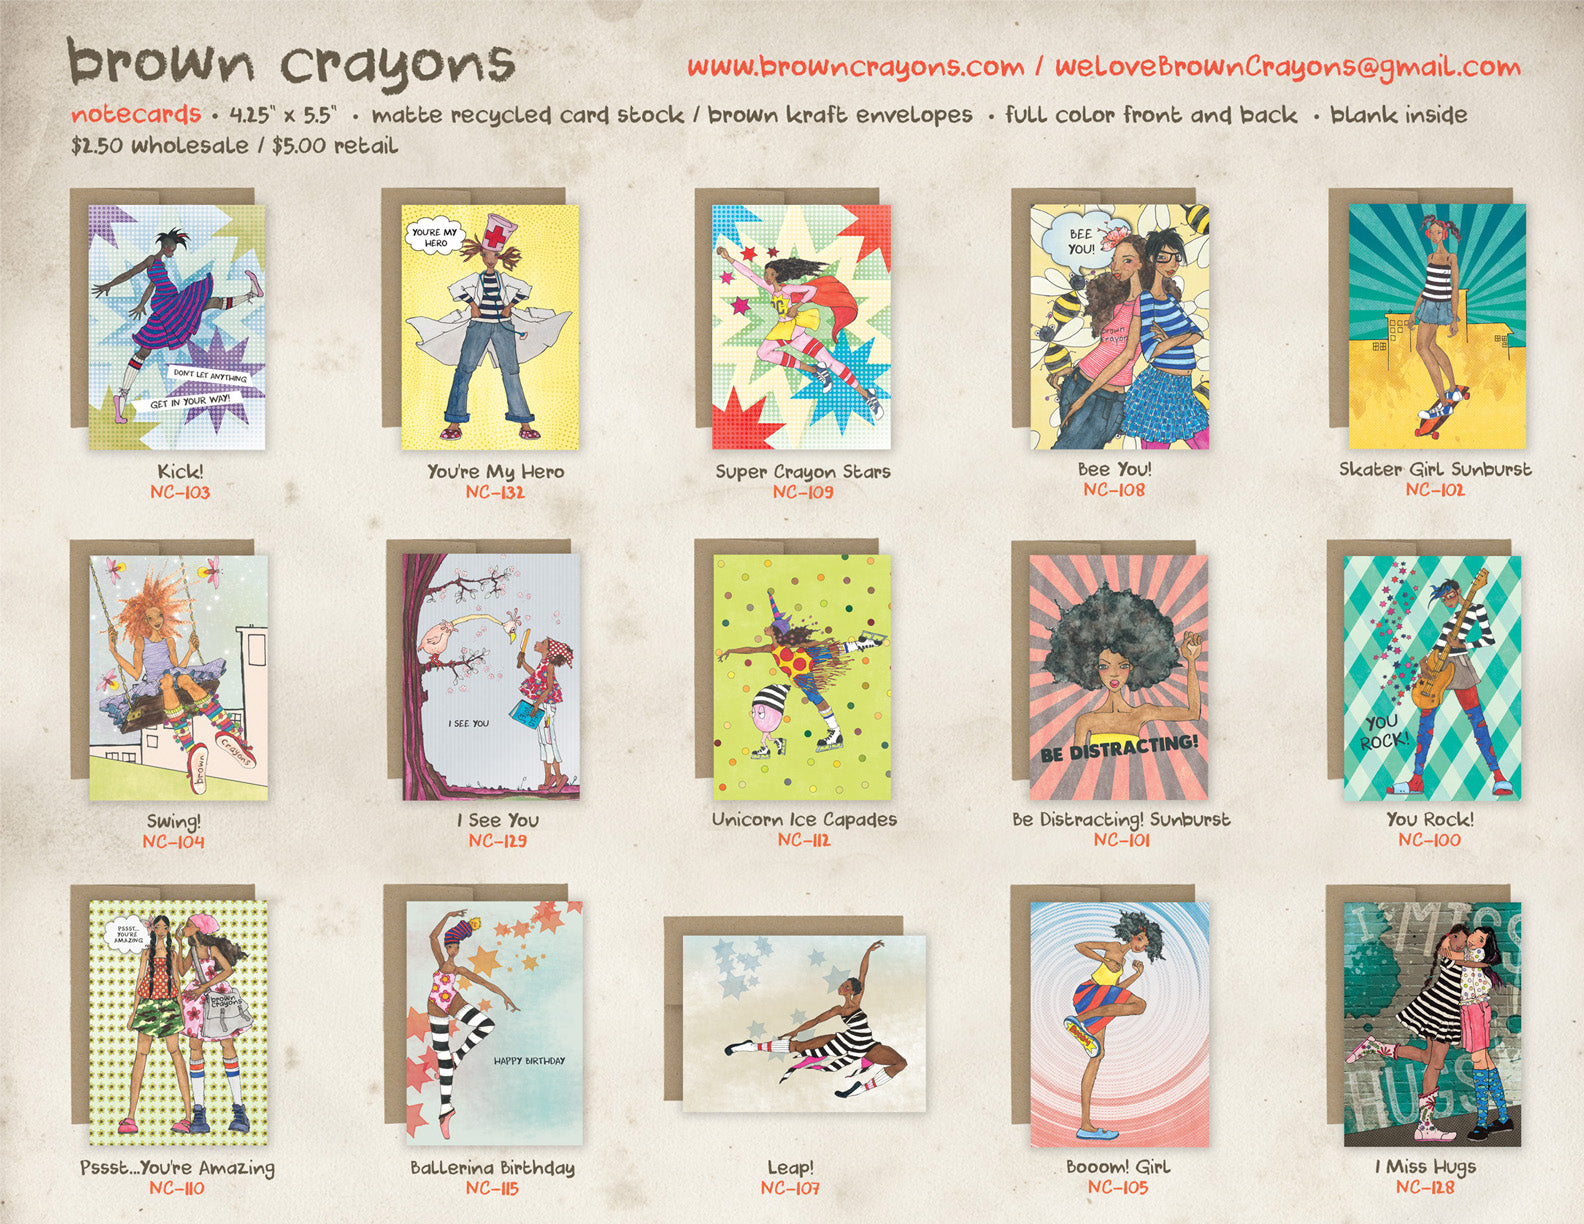 brown crayons wholesale line sheet - notecards